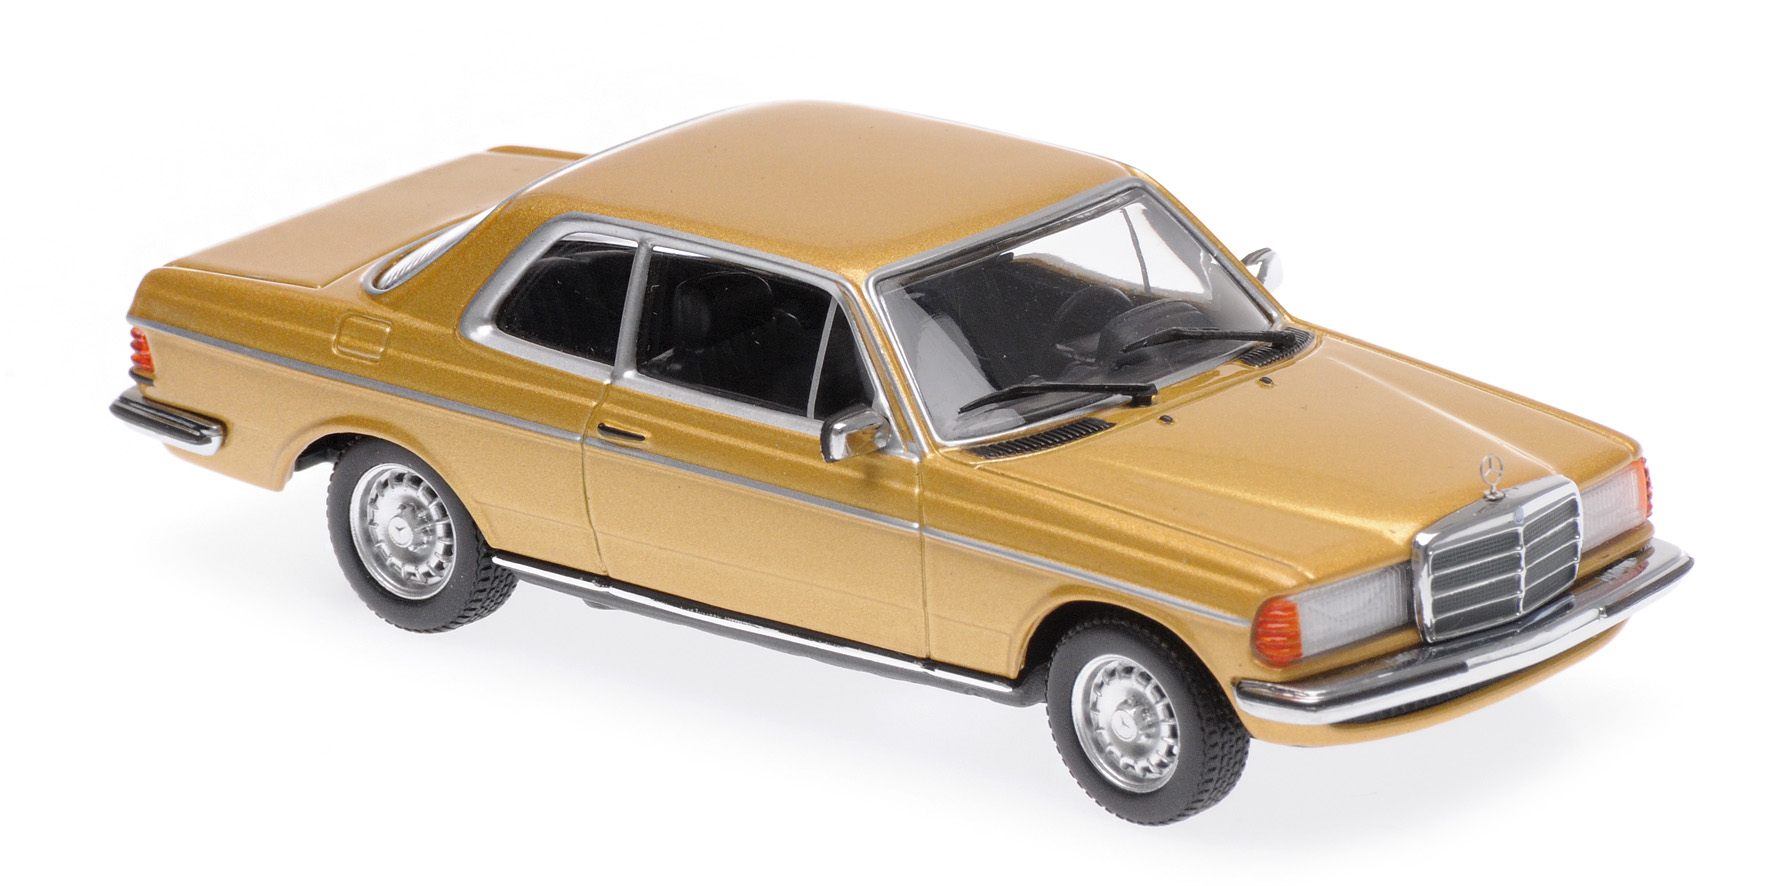 Mercedes-Benz 230CE (W123) 1976 Goud Metallic